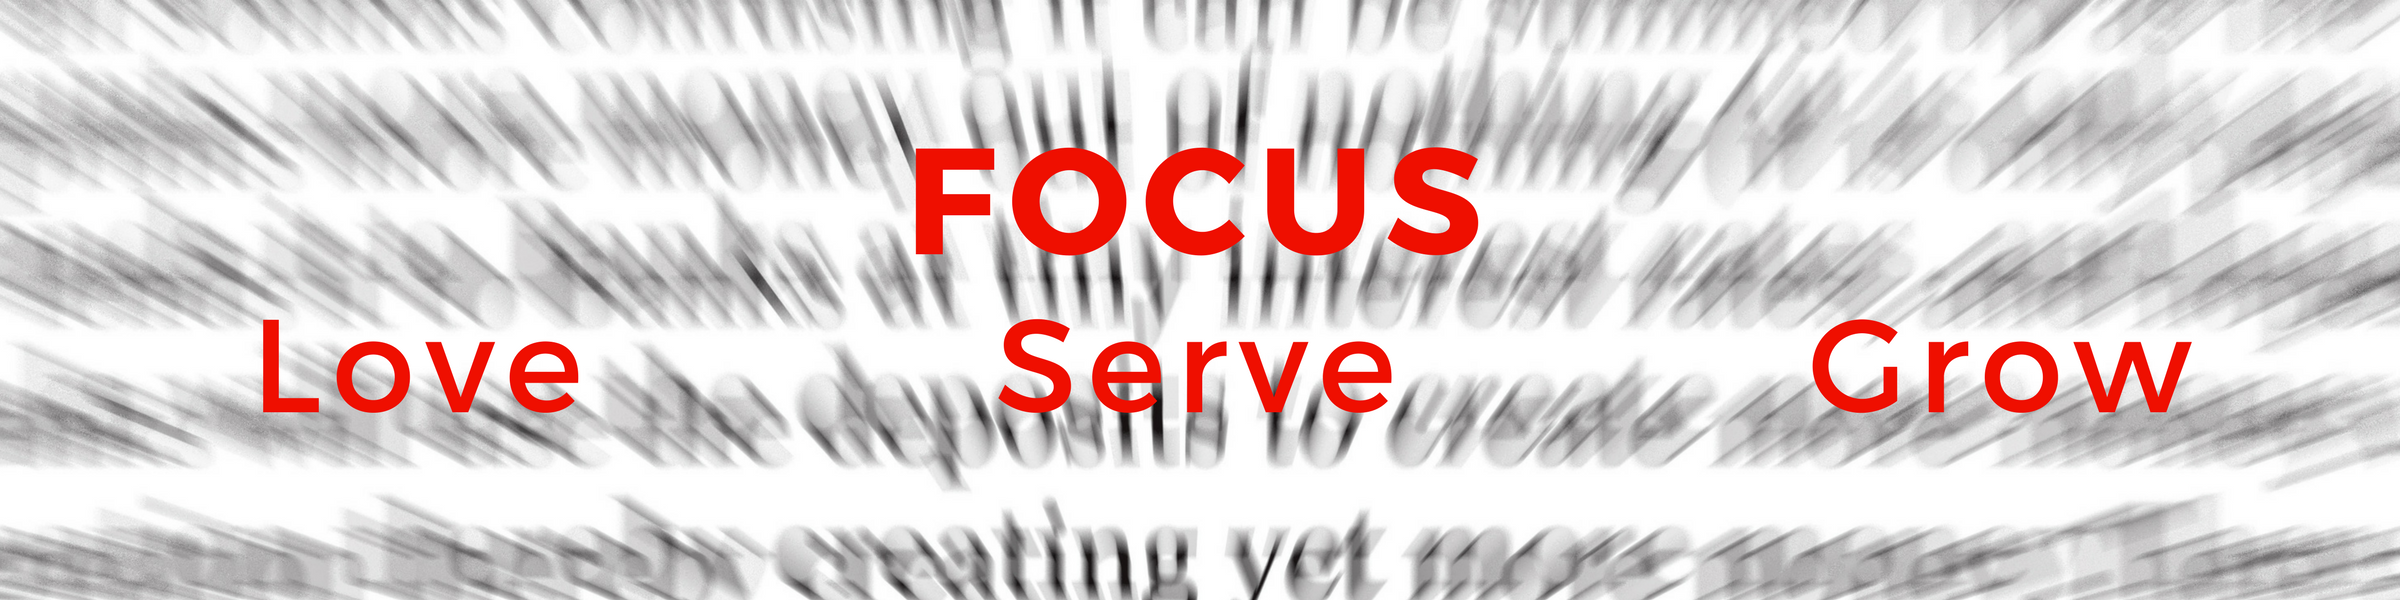 Focus - Serve Pt. 2